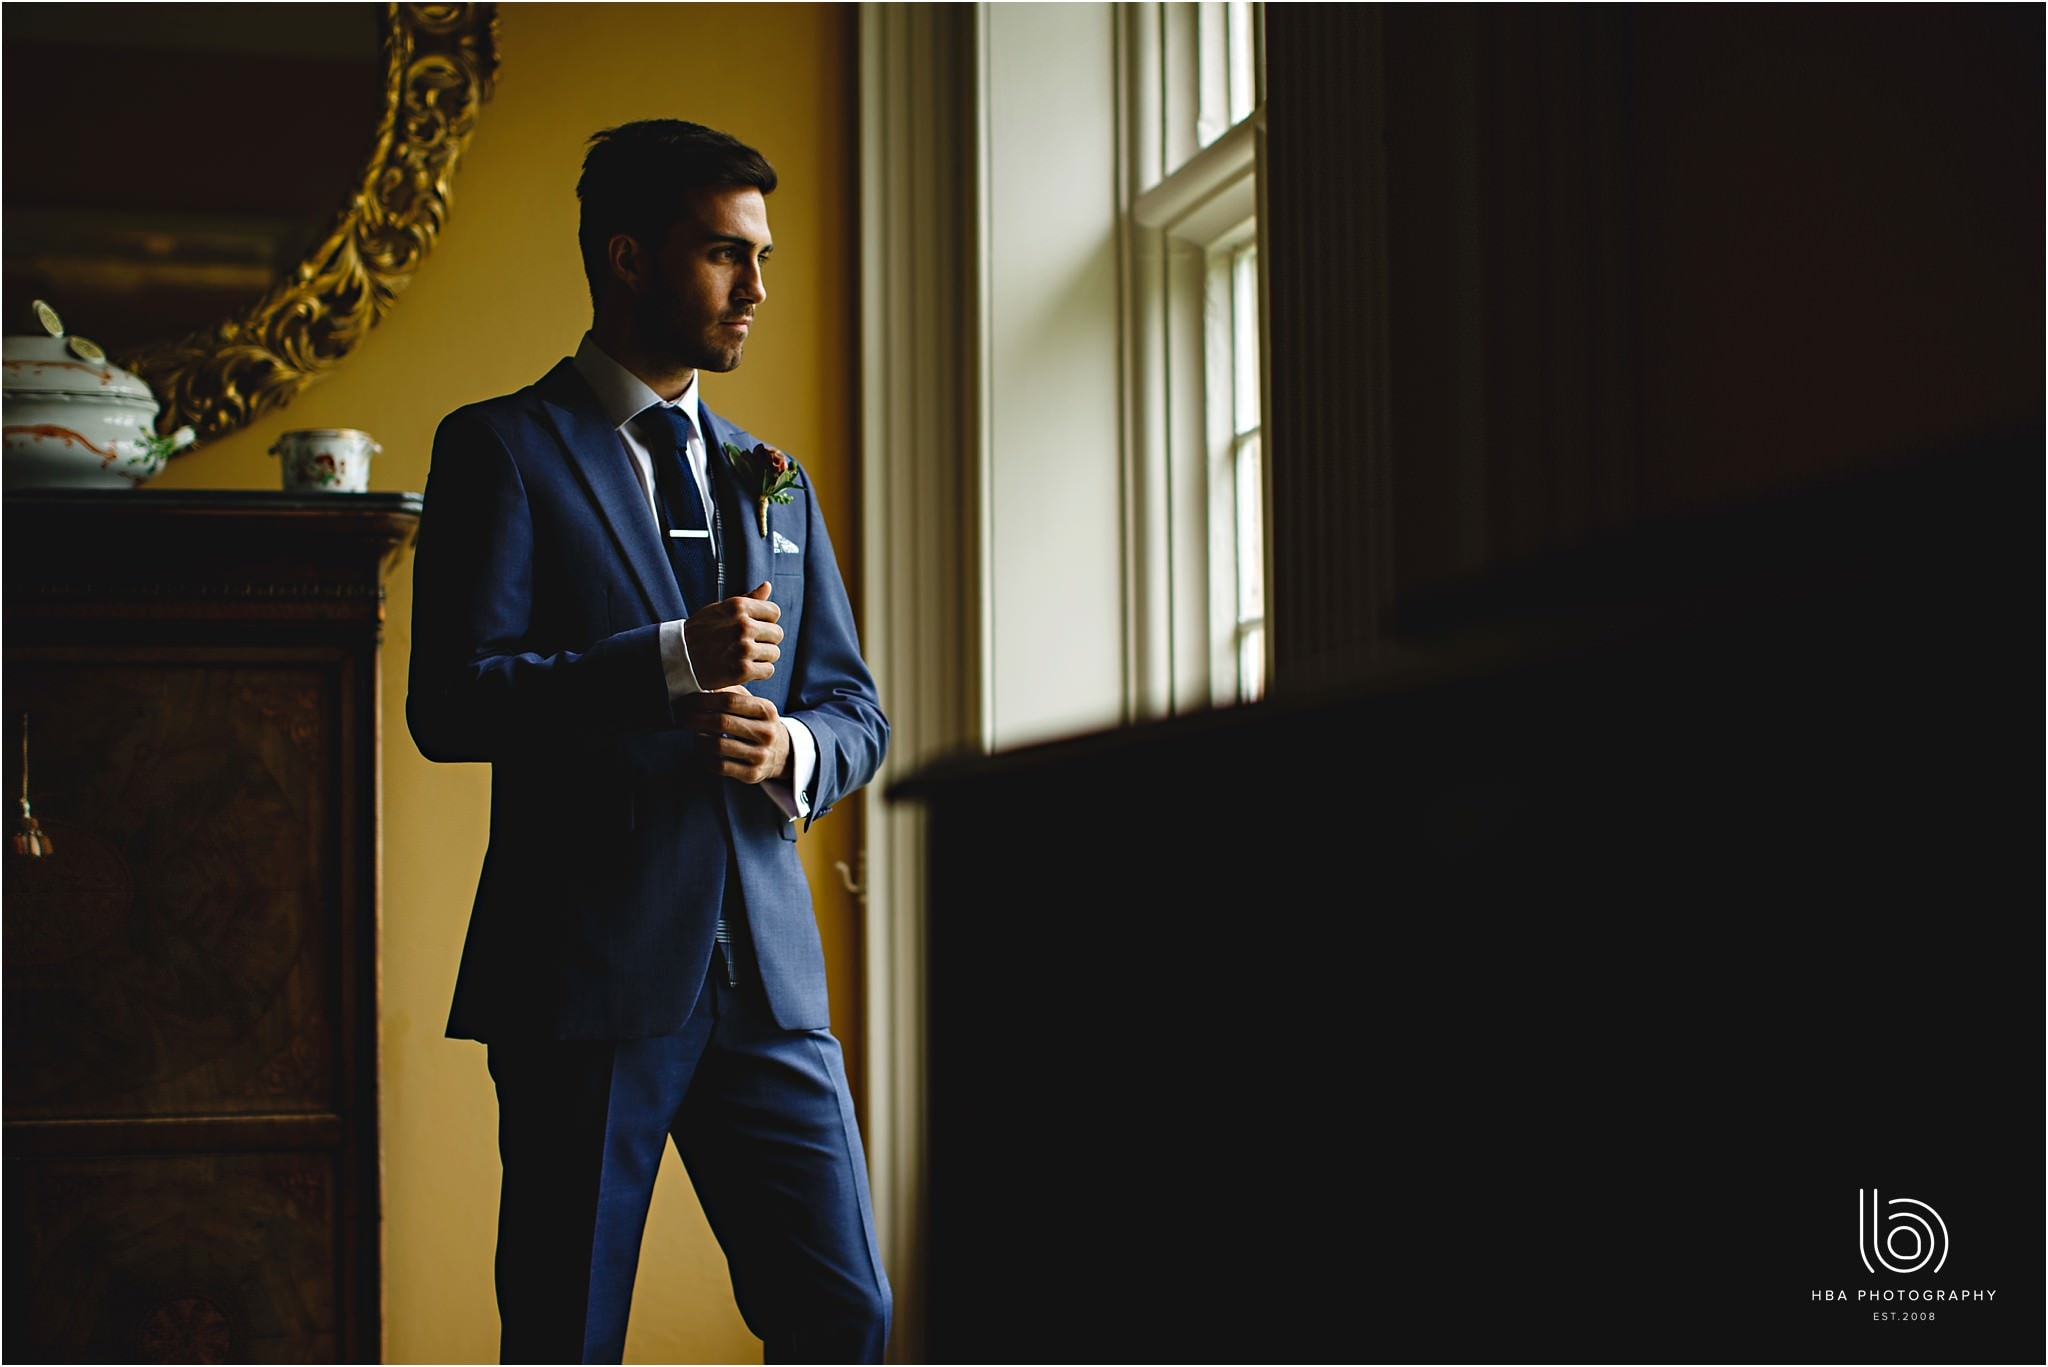 the groom in his custom made suit